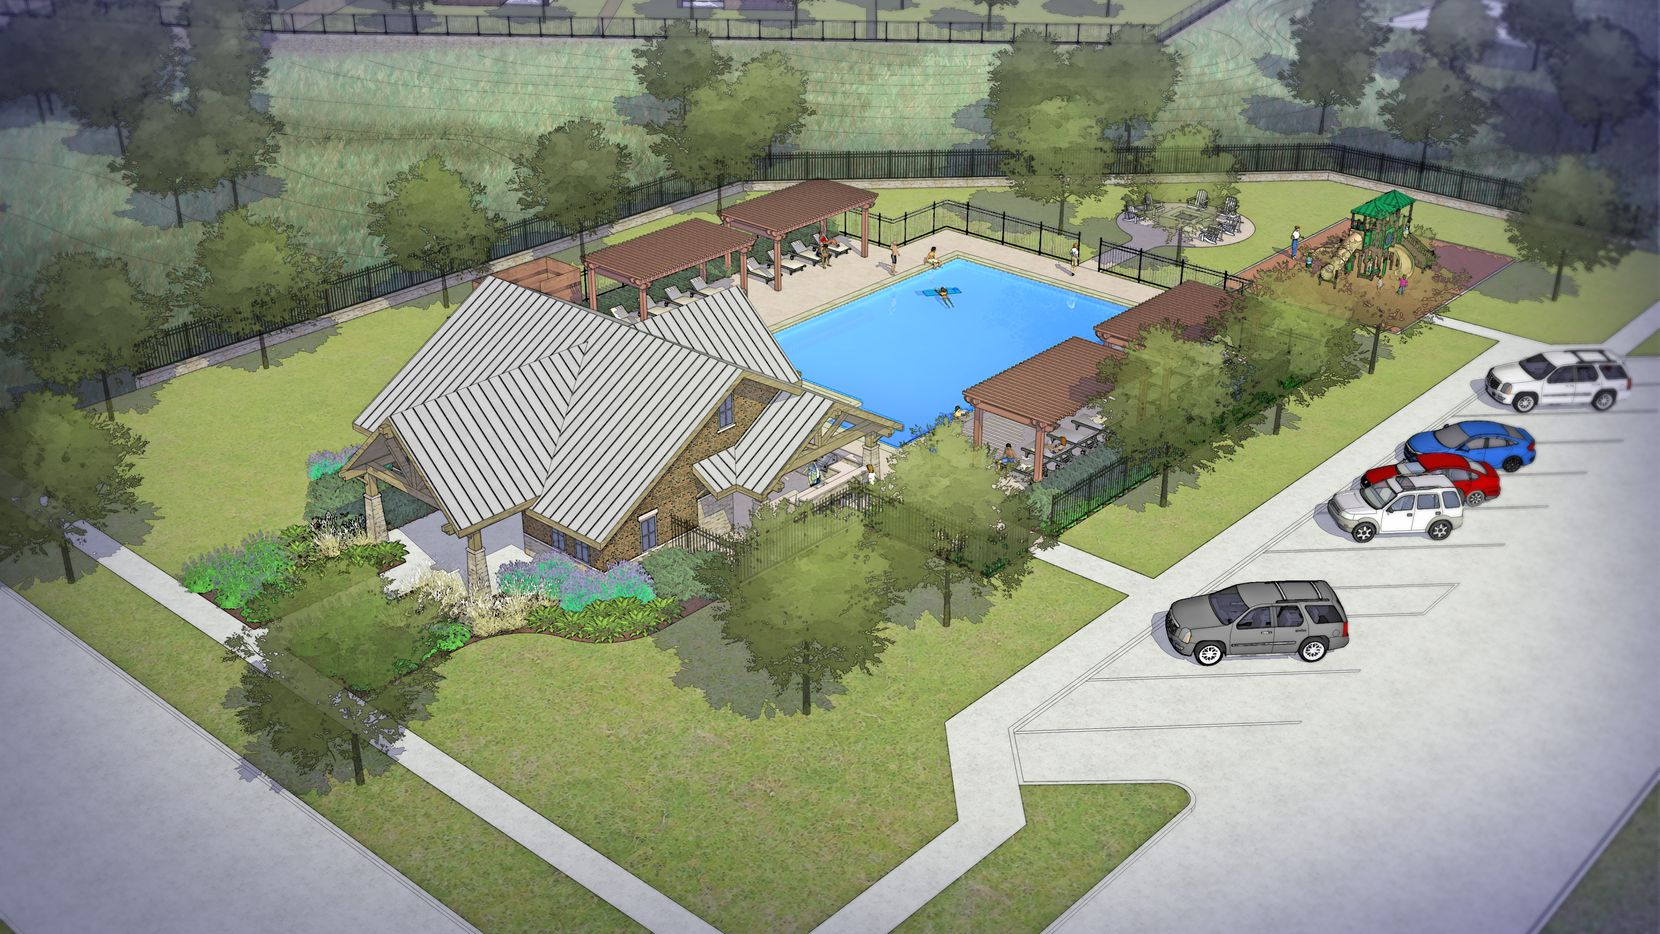 The Frisco Springs project will have an amenity center with a pool for residents.